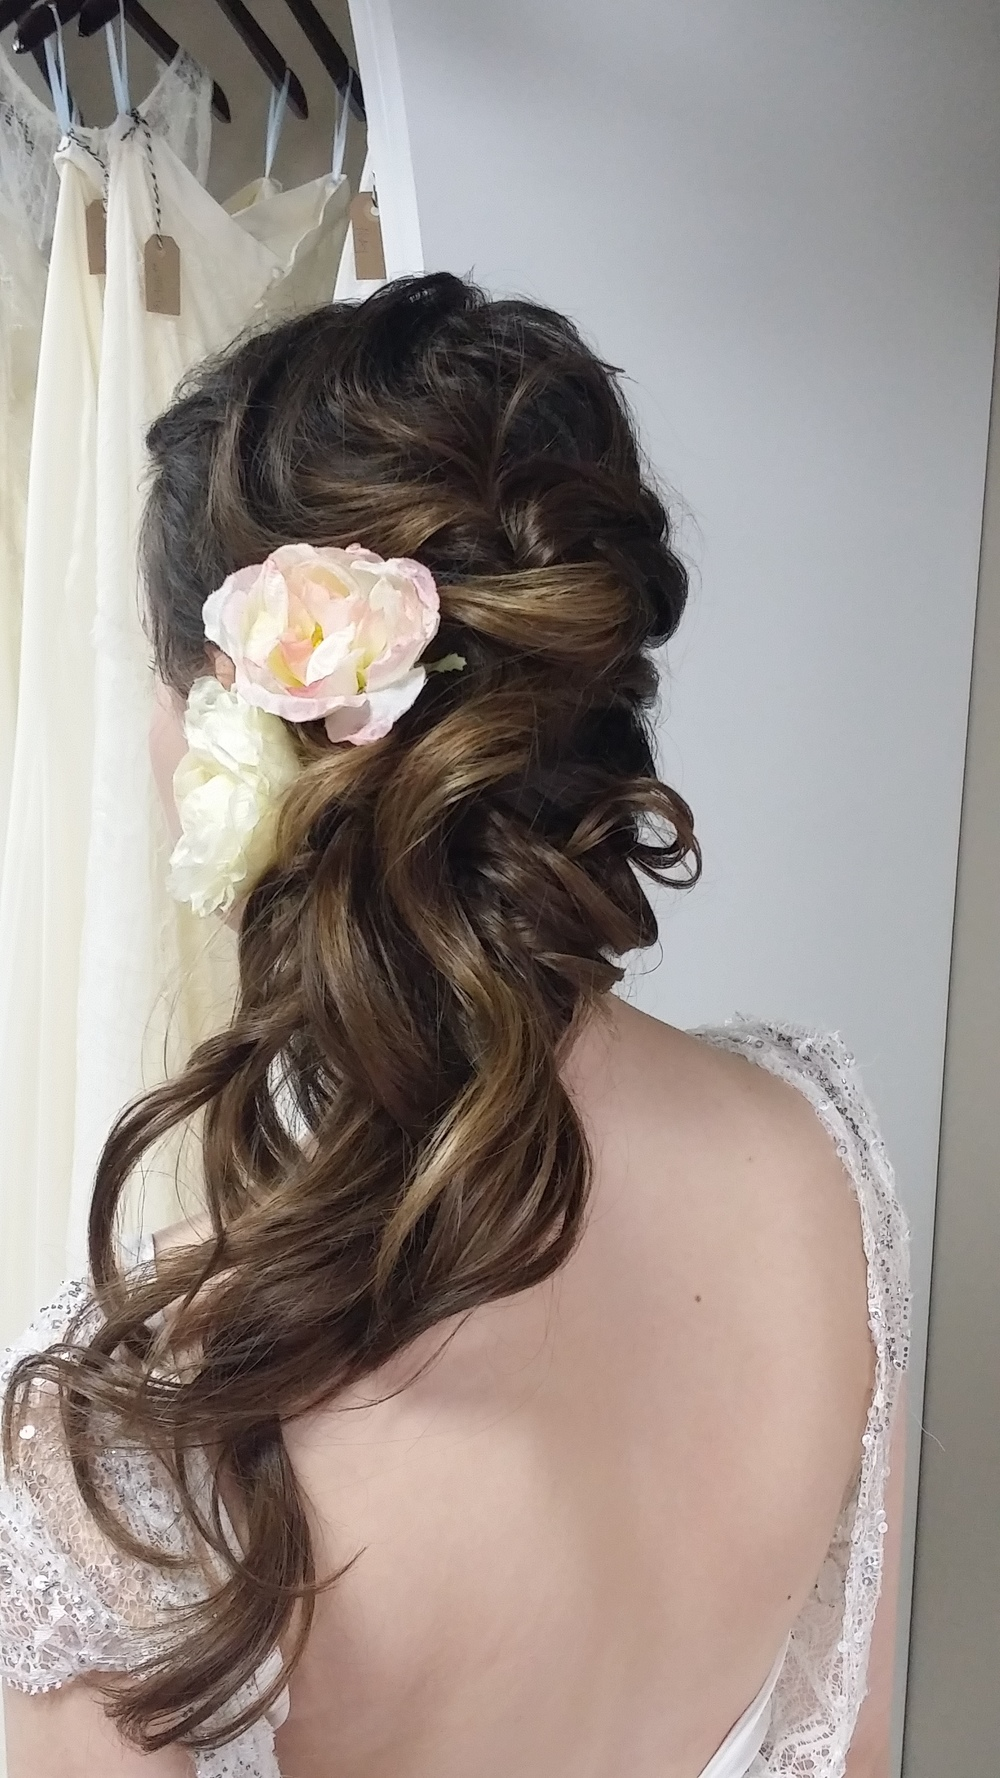 Romantic half up half down hair by Beyond Beautiful by Heather, Savannah, GA